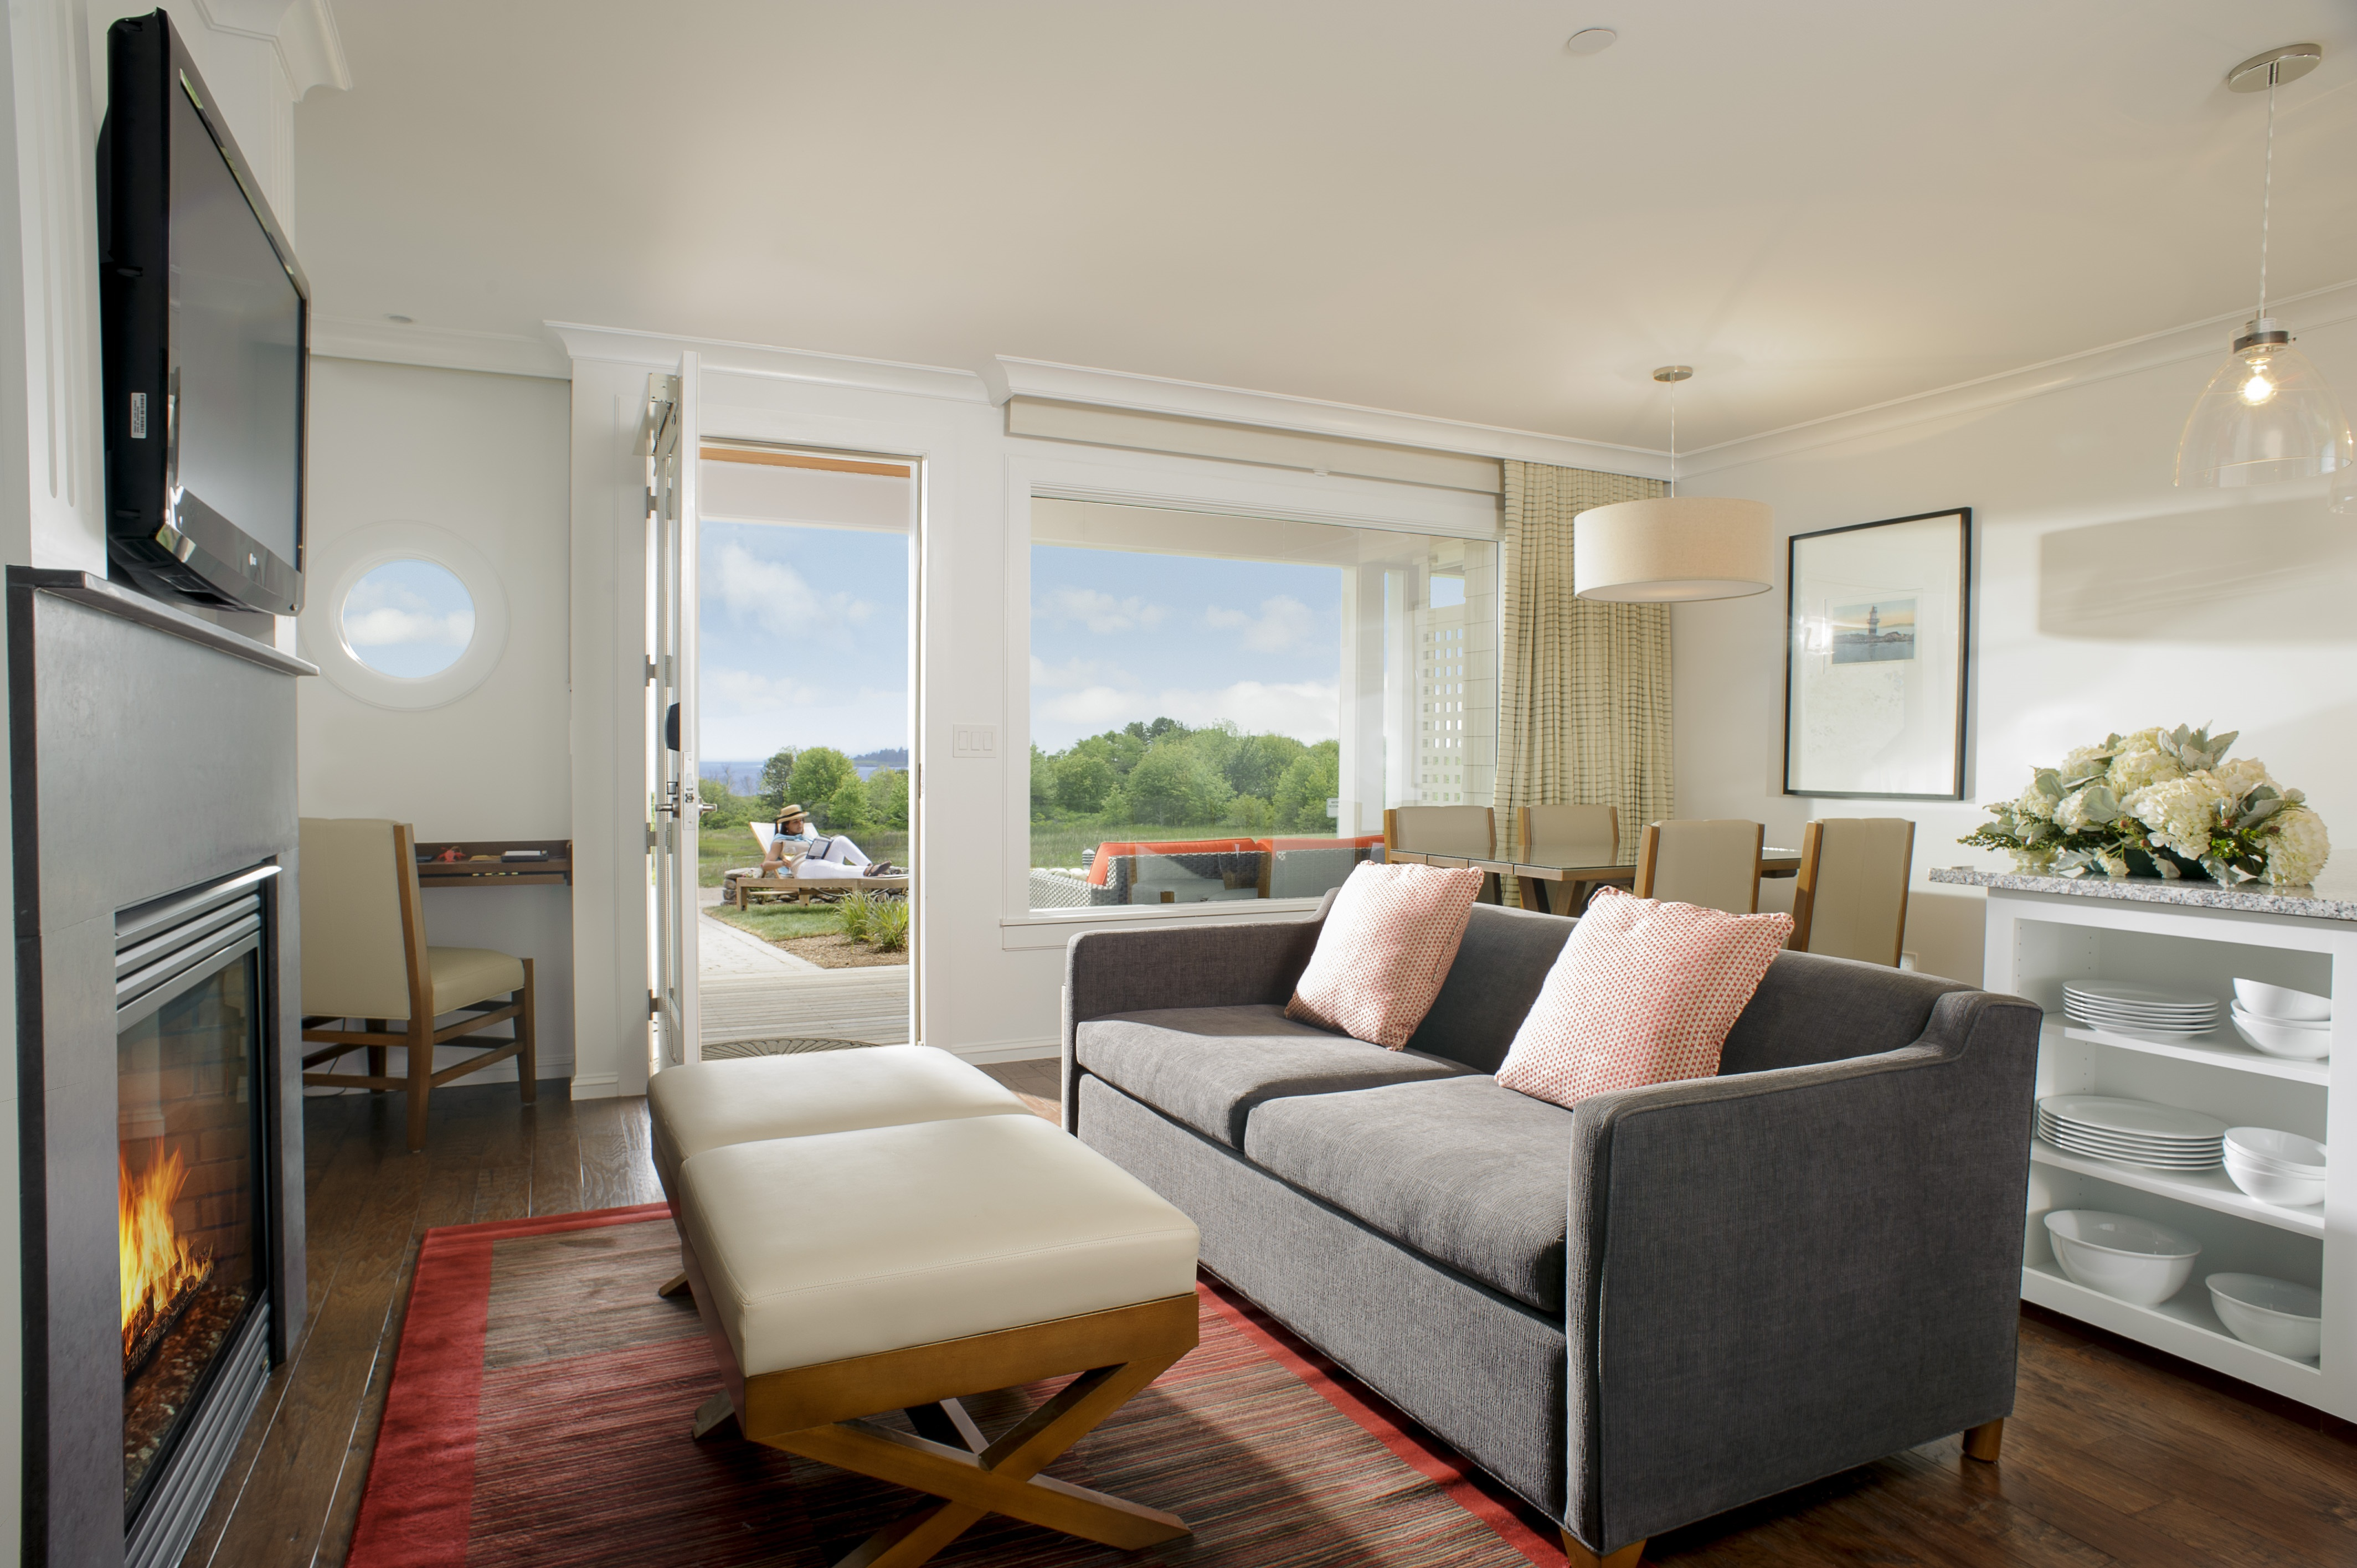 Inn By The Sea In Maine Has New Family Beach Suites For Multigenerational Groups